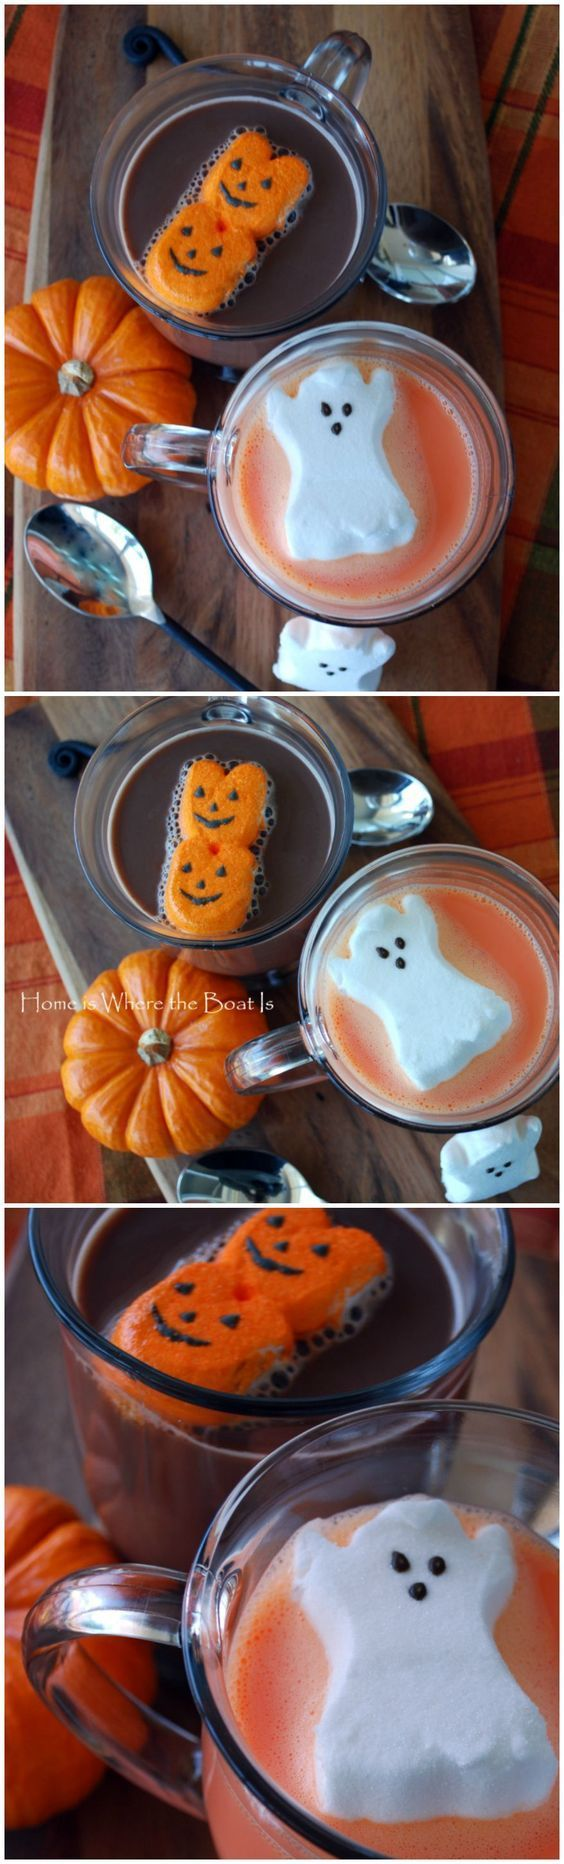 Halloween PEEPS Hot Chocolate and Orange Hot Chocolate Recipe! Fun idea for a Halloween party or family night.